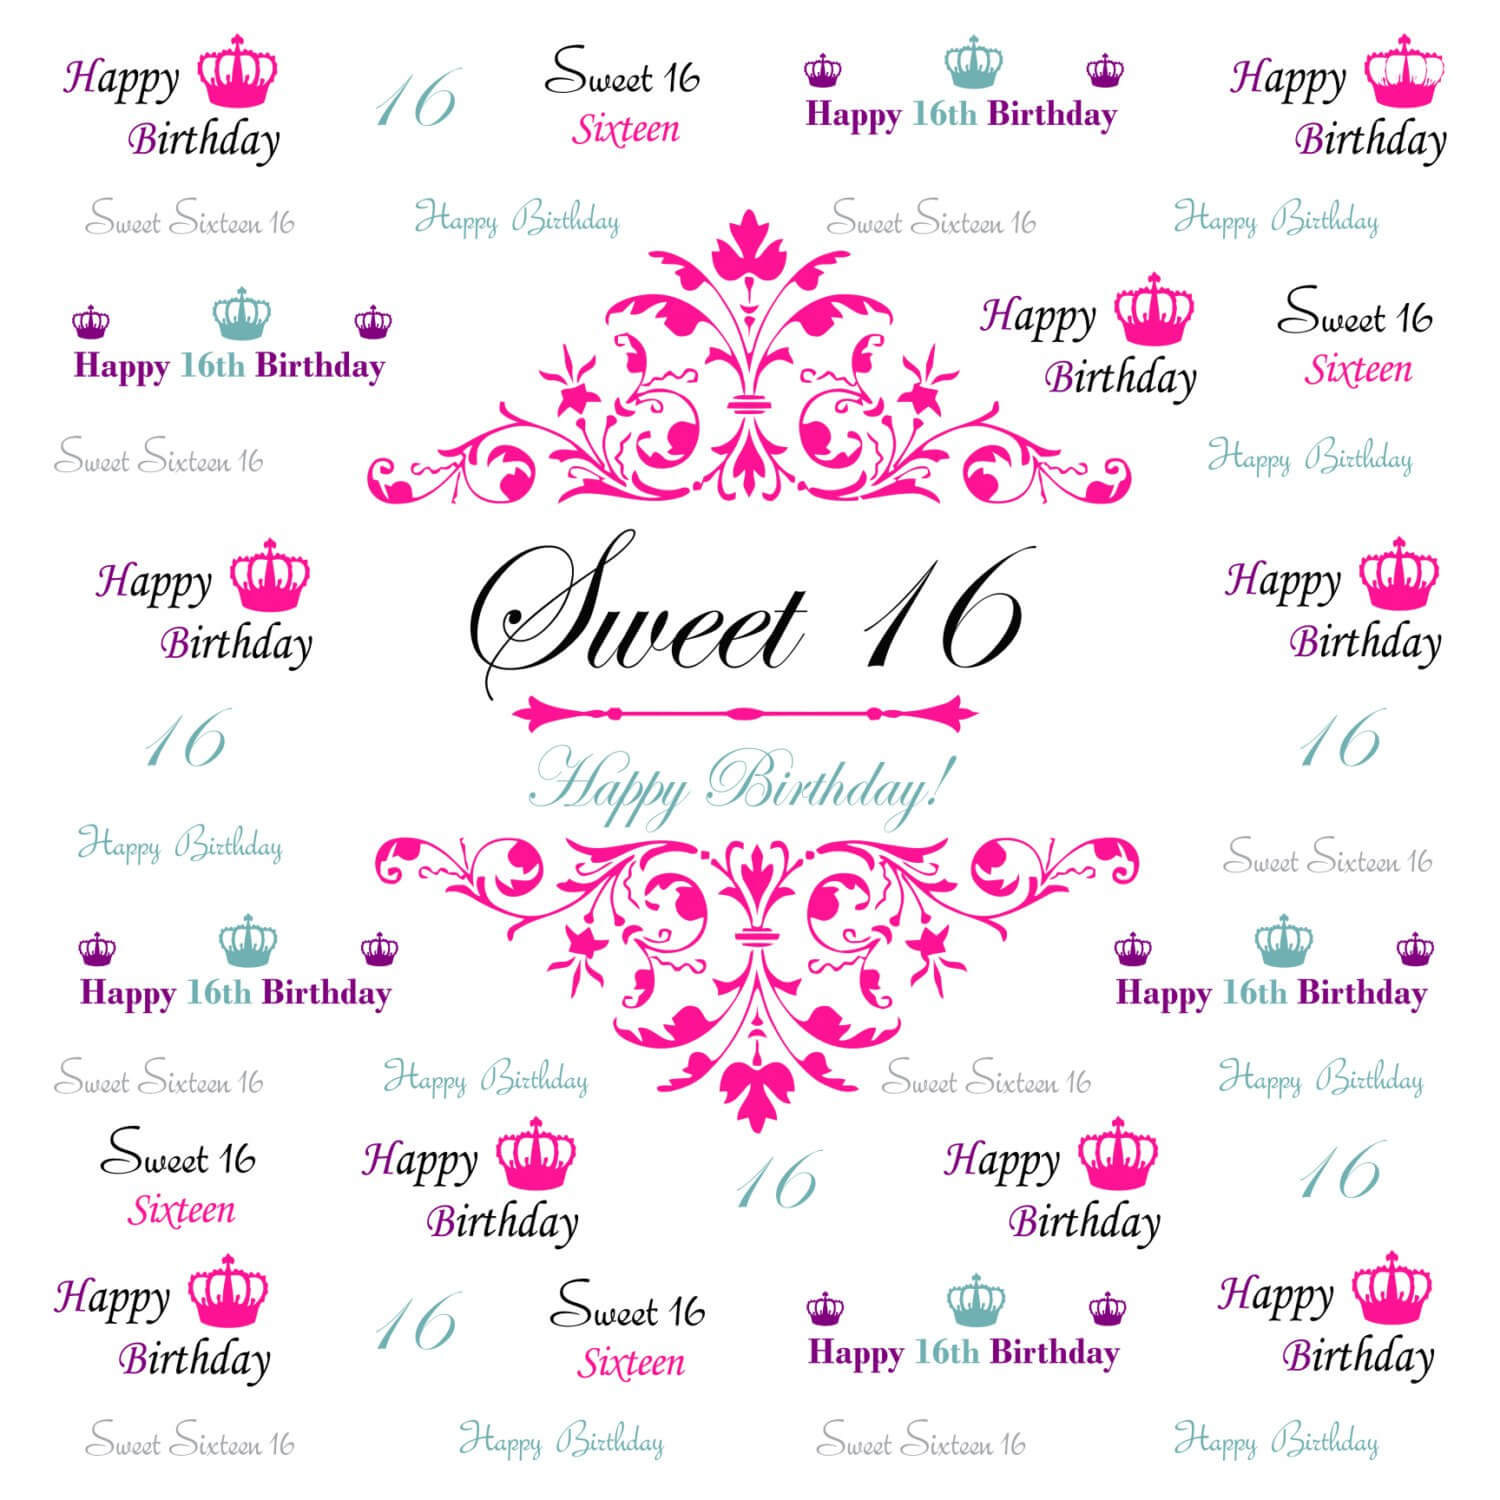 Sweet 16 Banner Template - 10+ Professional Templates Ideas pertaining to Sweet 16 Banner Template